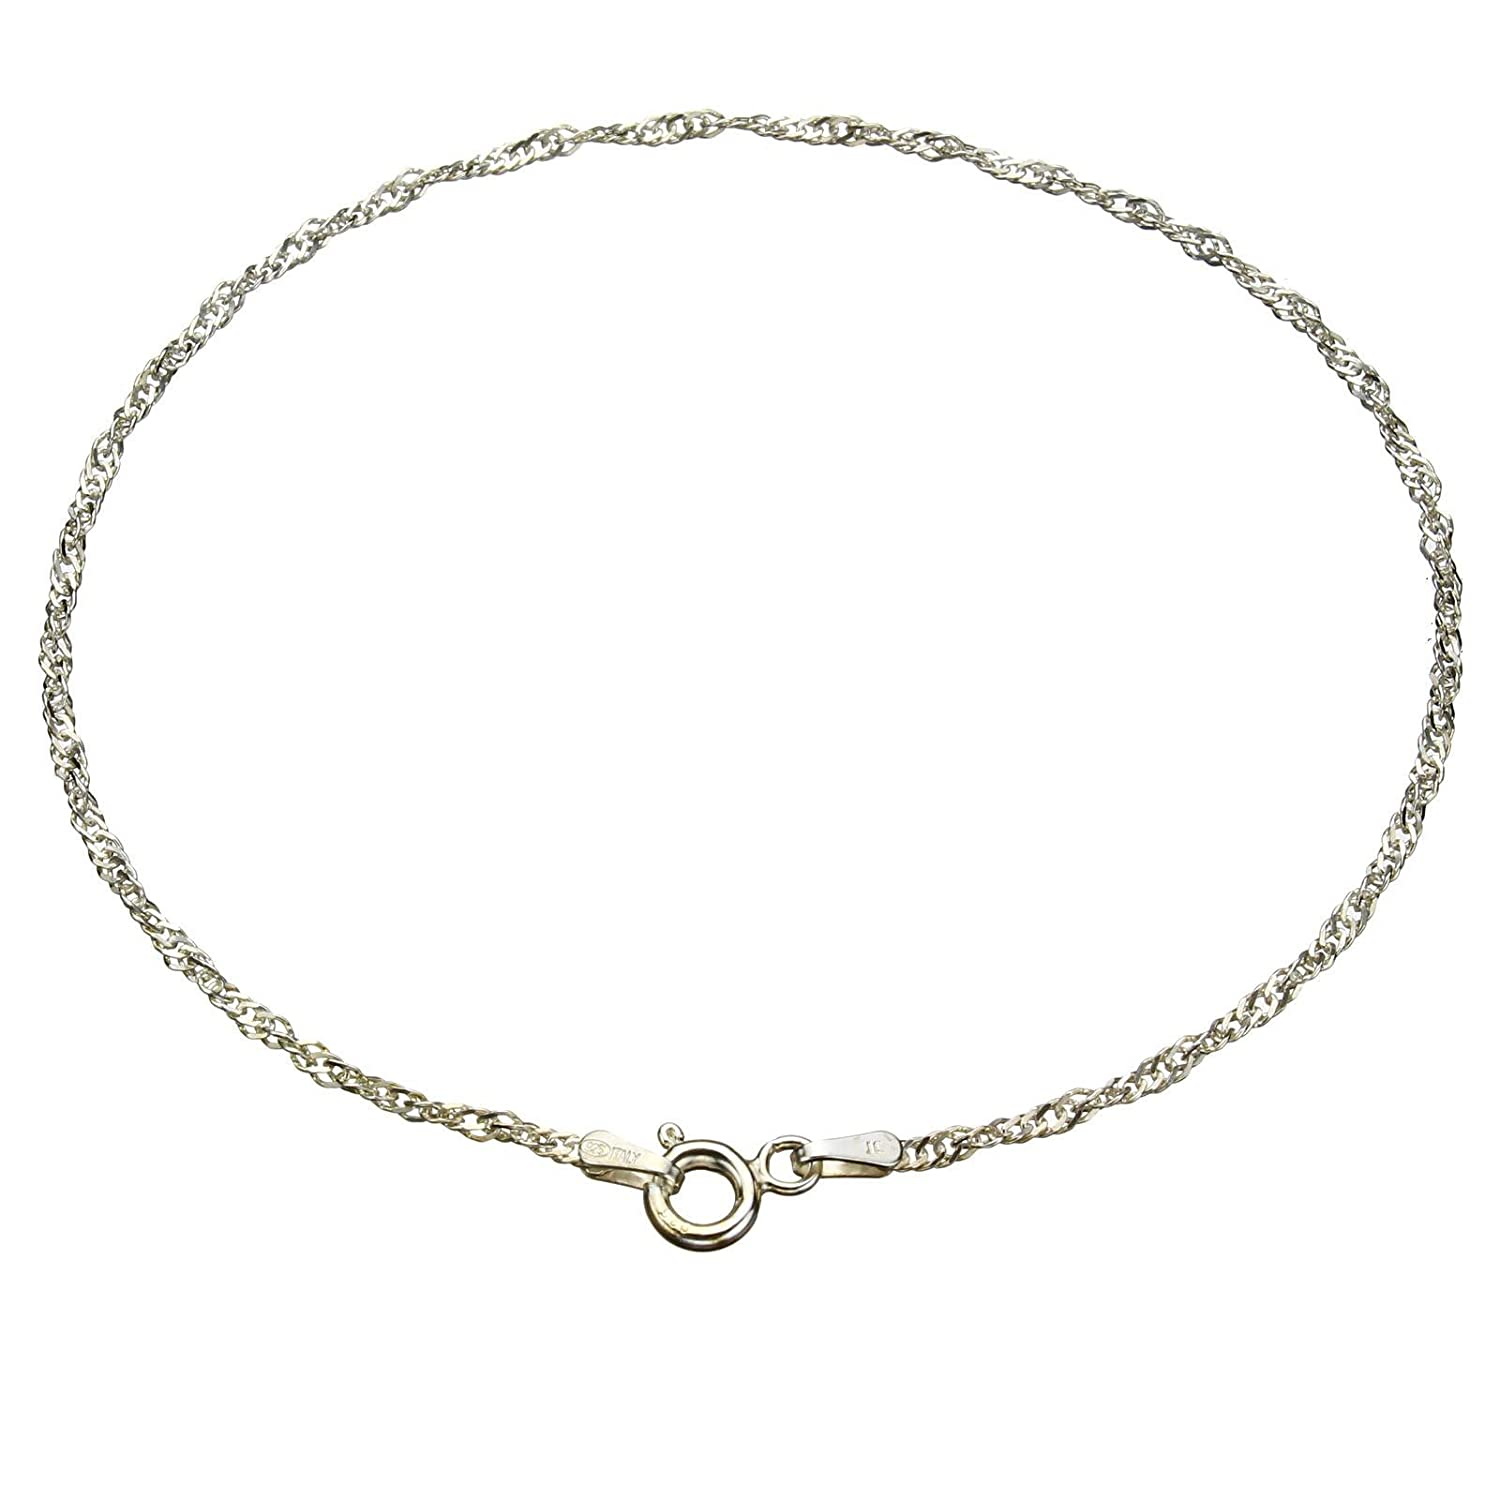 Sterling Silver Singapore Nickel Free Chain Anklet Italy 10